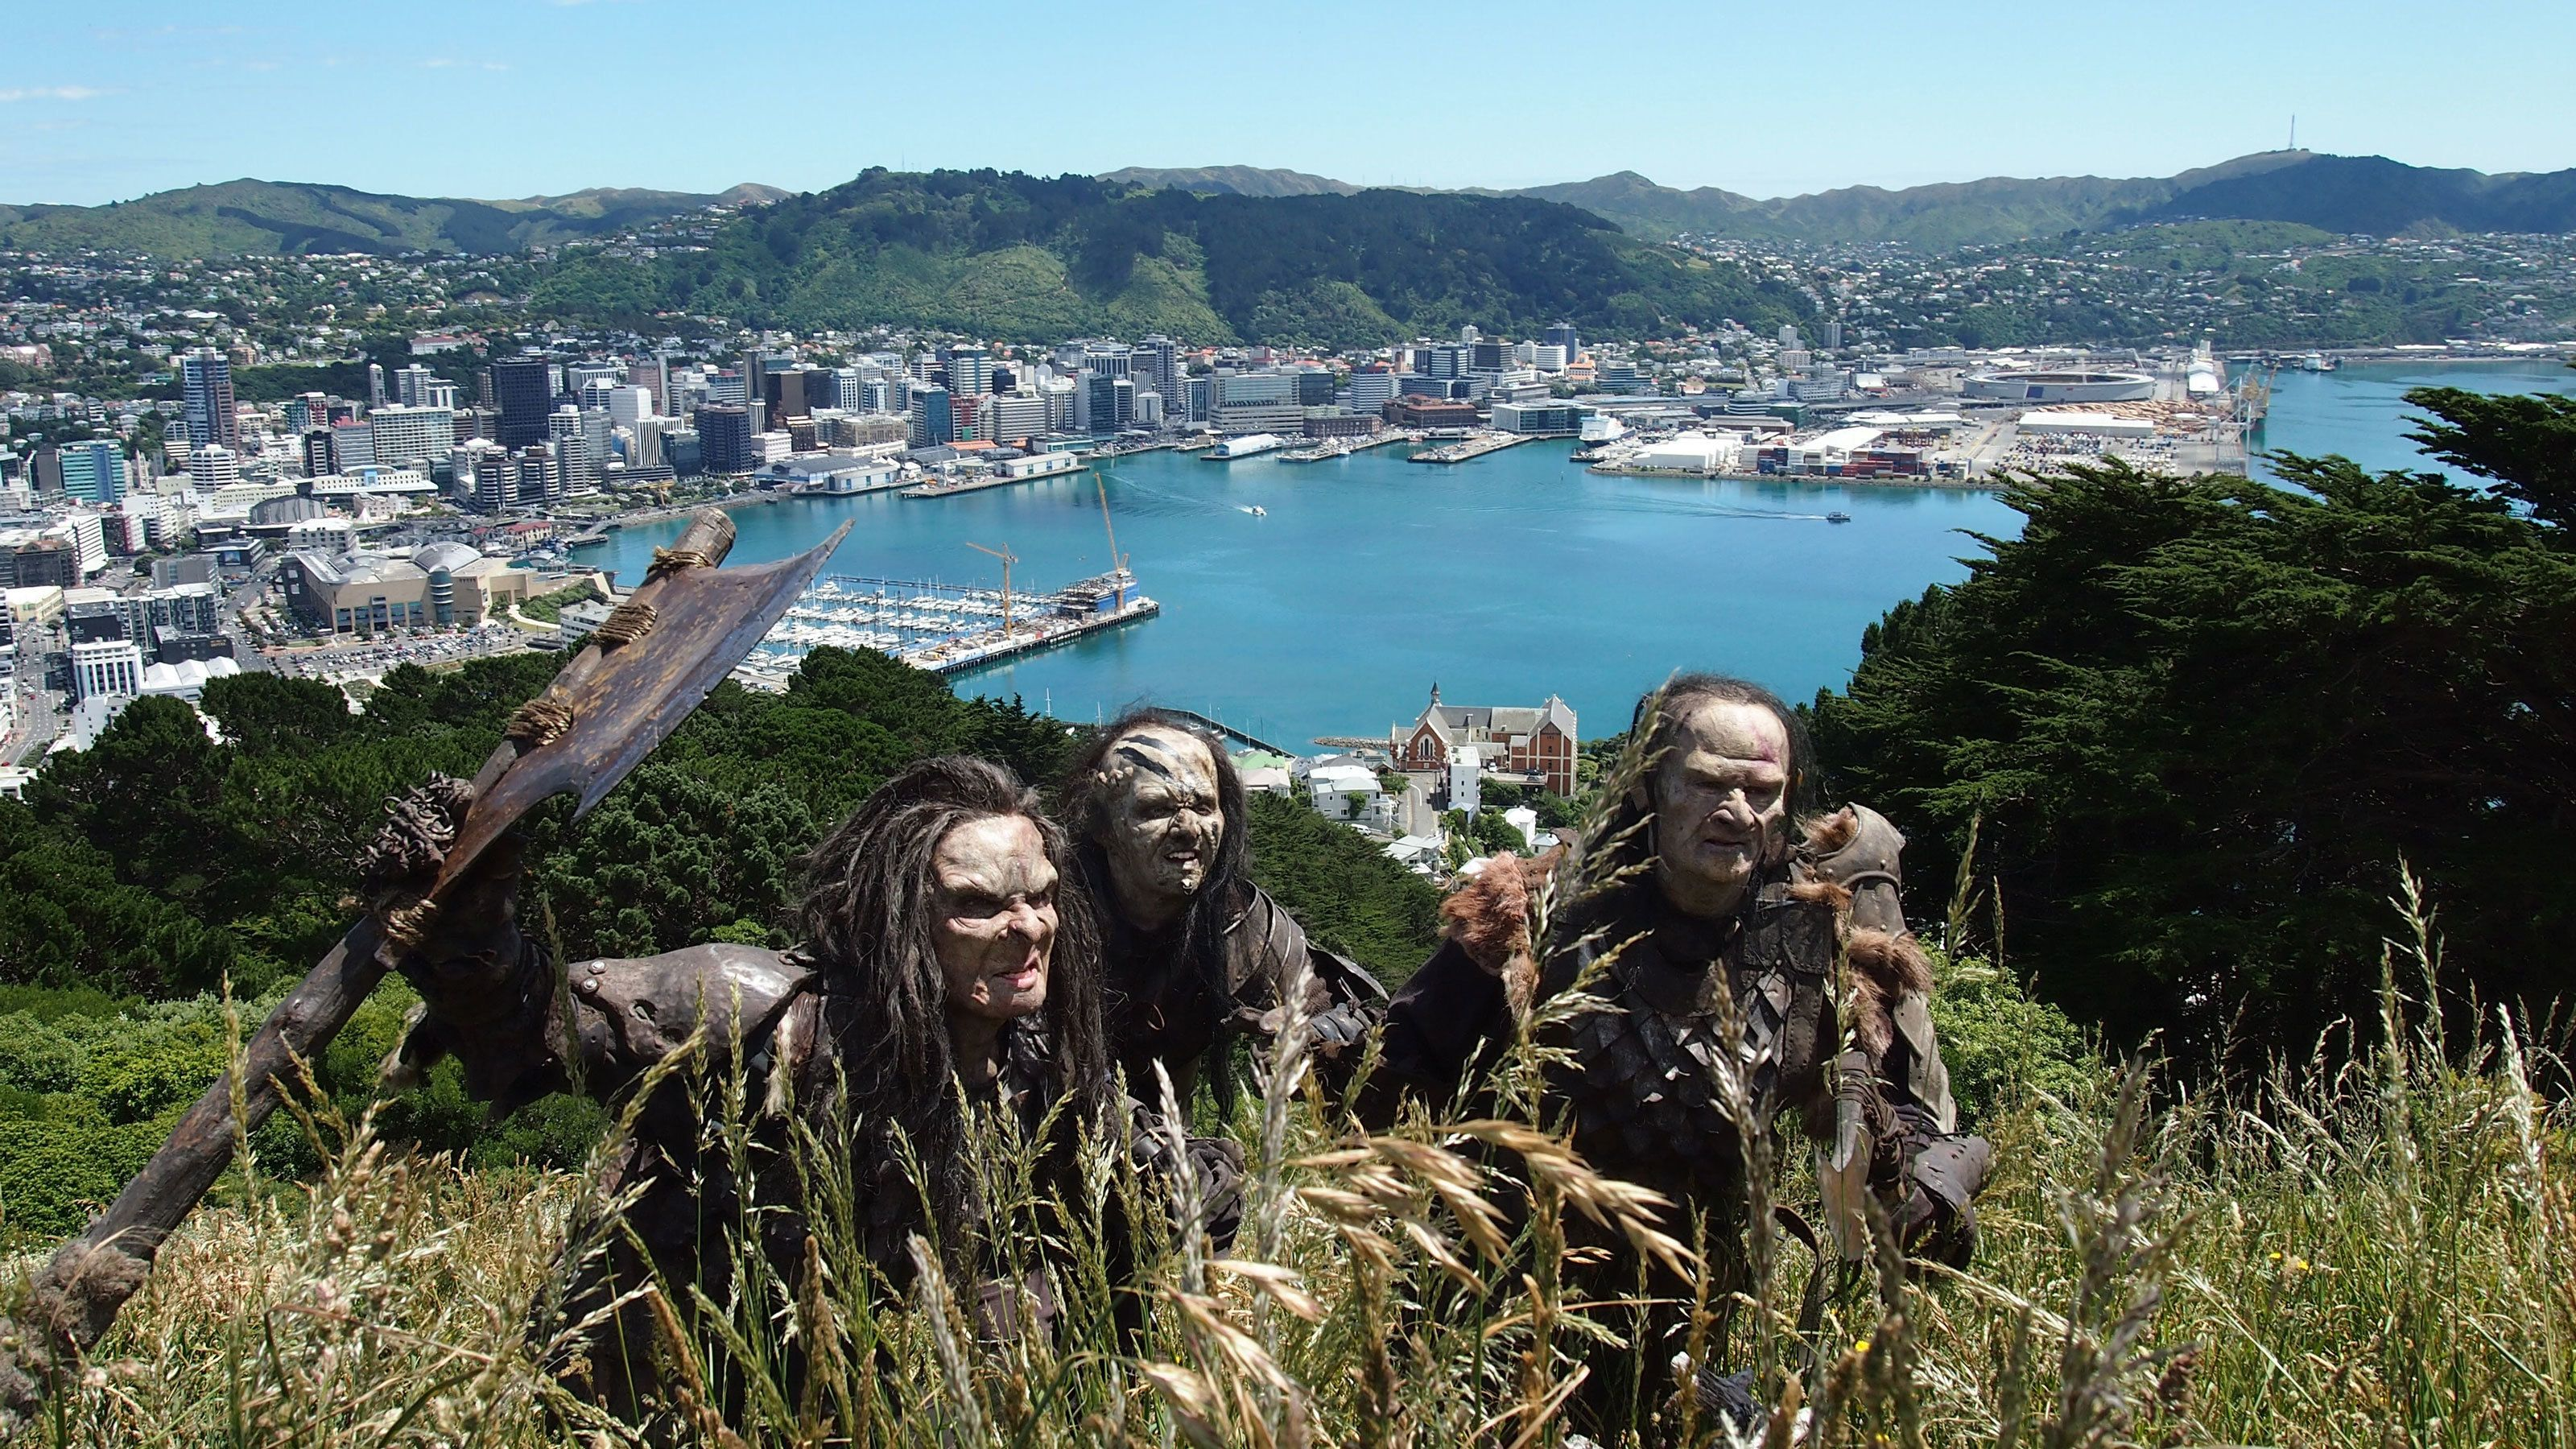 character actors in orc costume above the town of Wellington